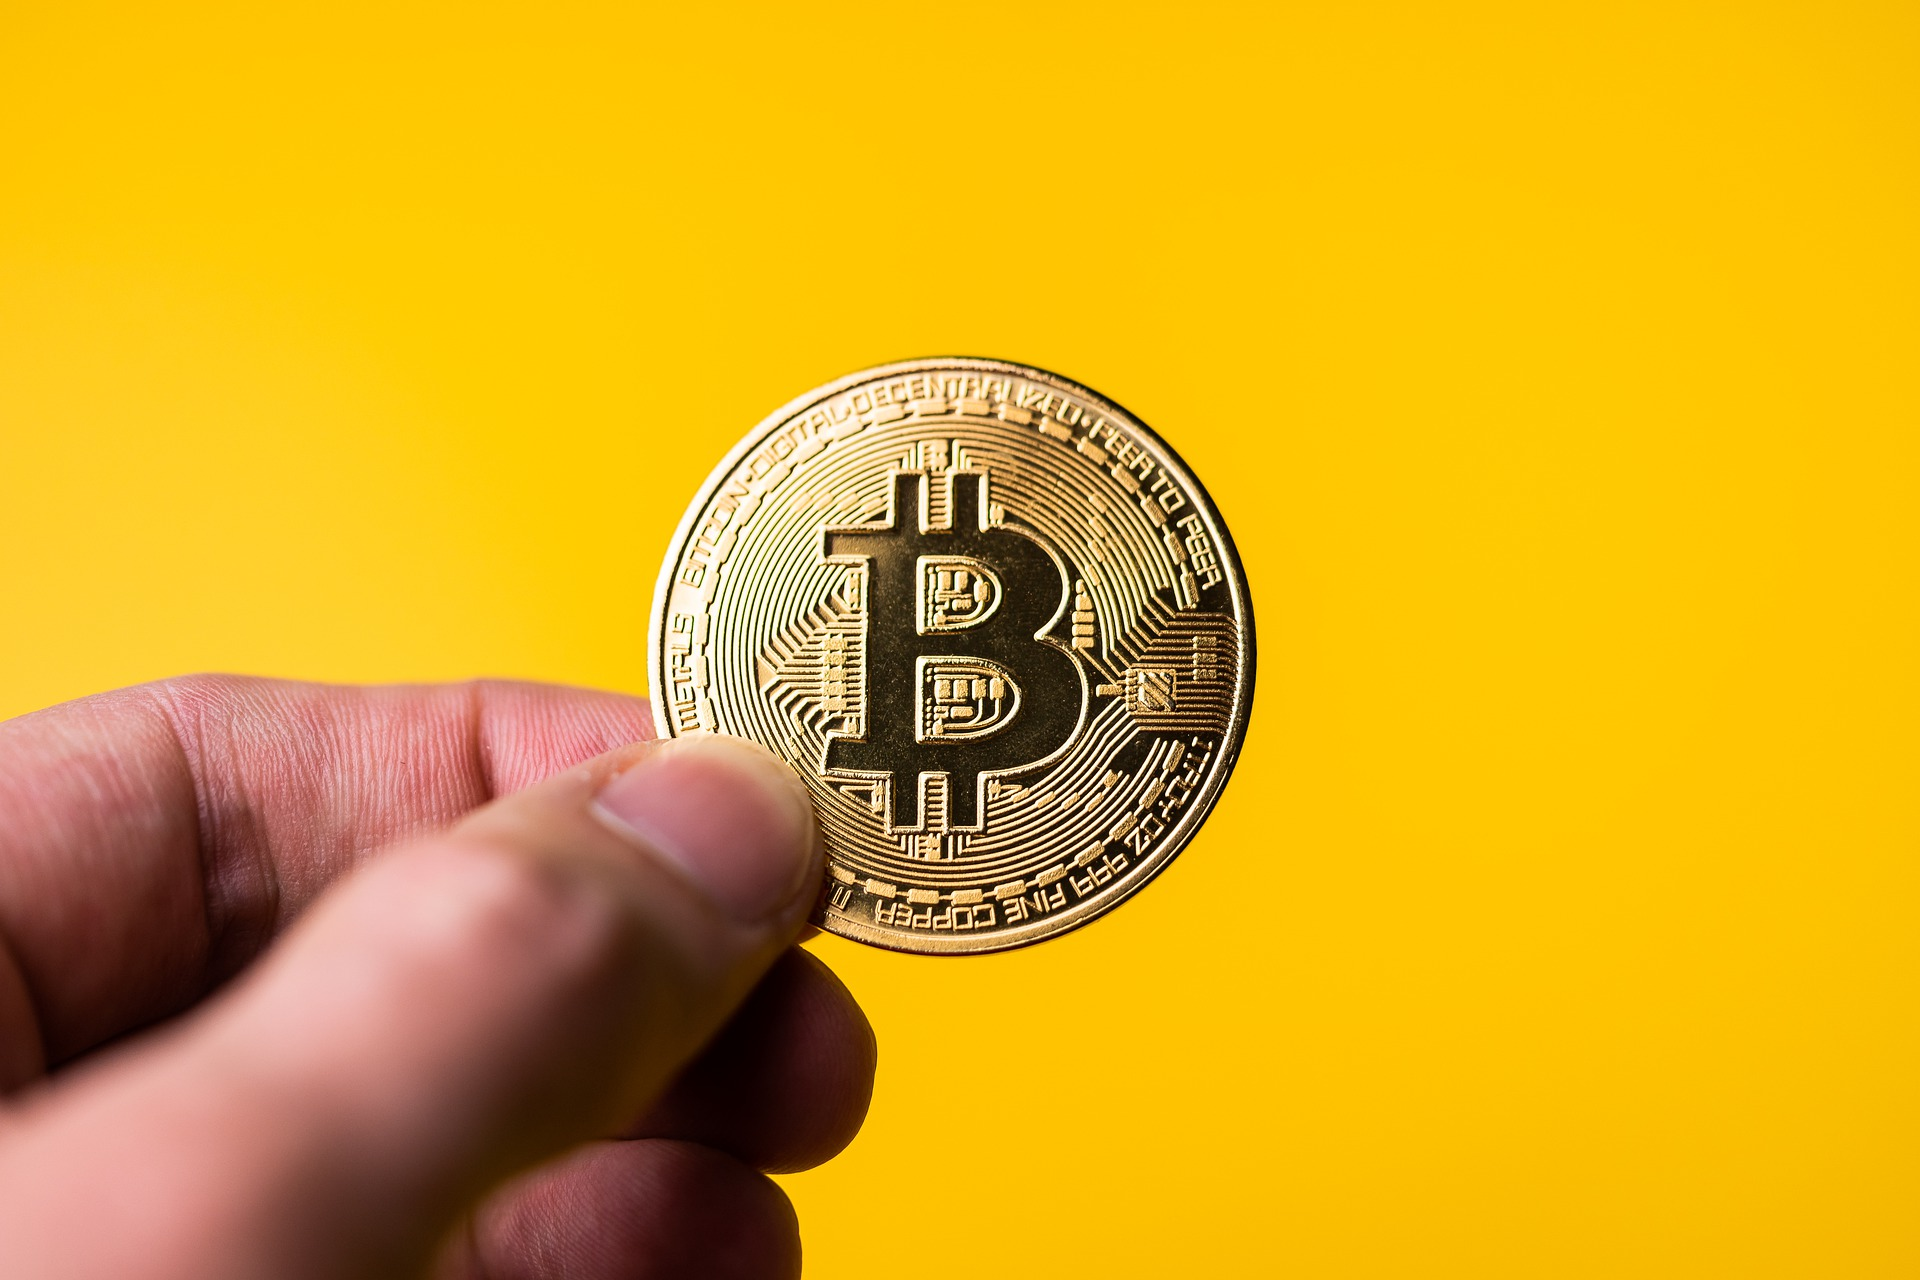 Bitcoin's Price Value Dropped by 17% Causing Liquidations worth $5 Billion